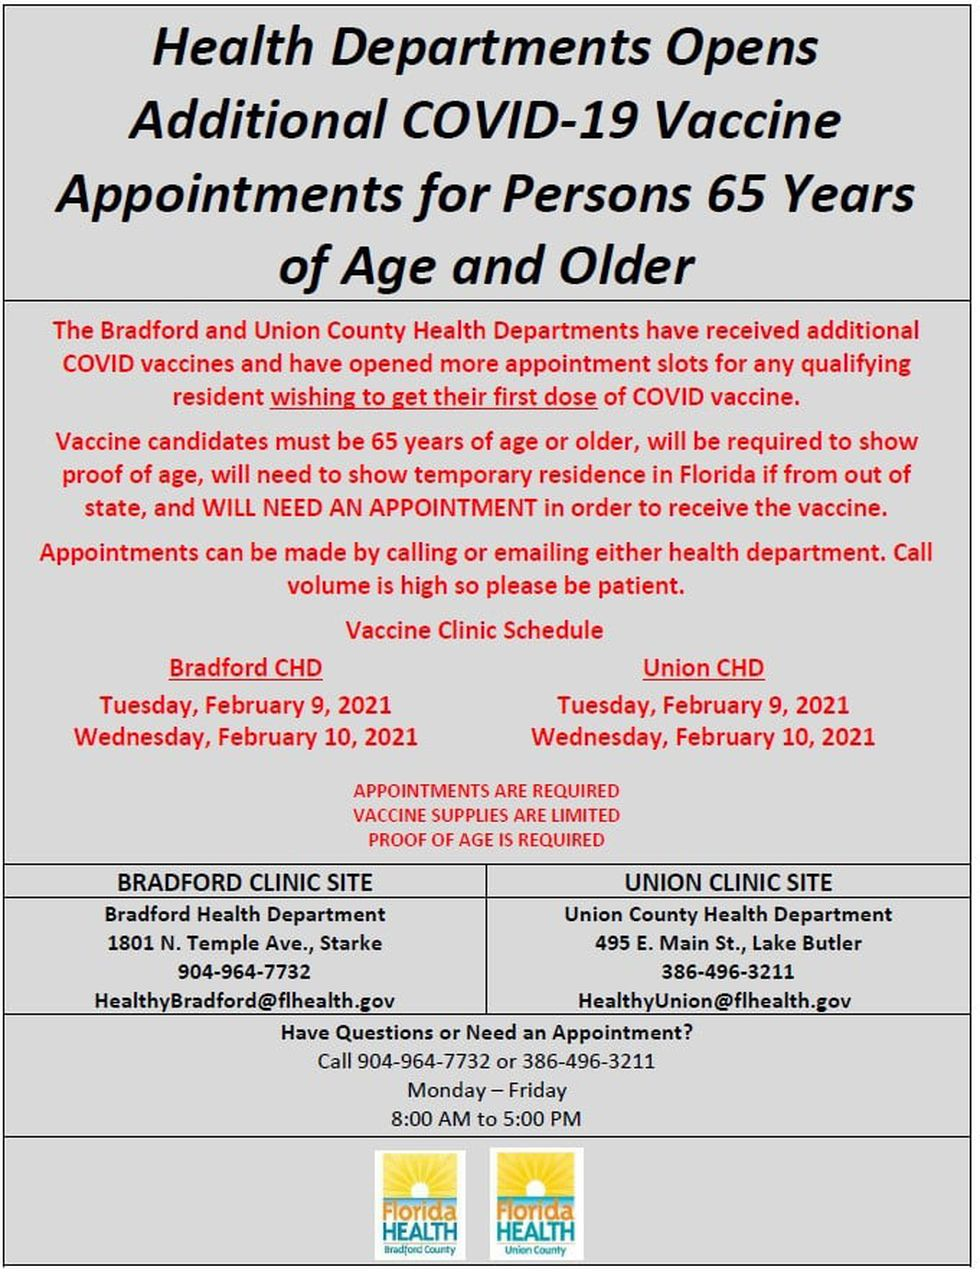 COVID-19 vaccination appointments are now available in both Bradford and Union counties.